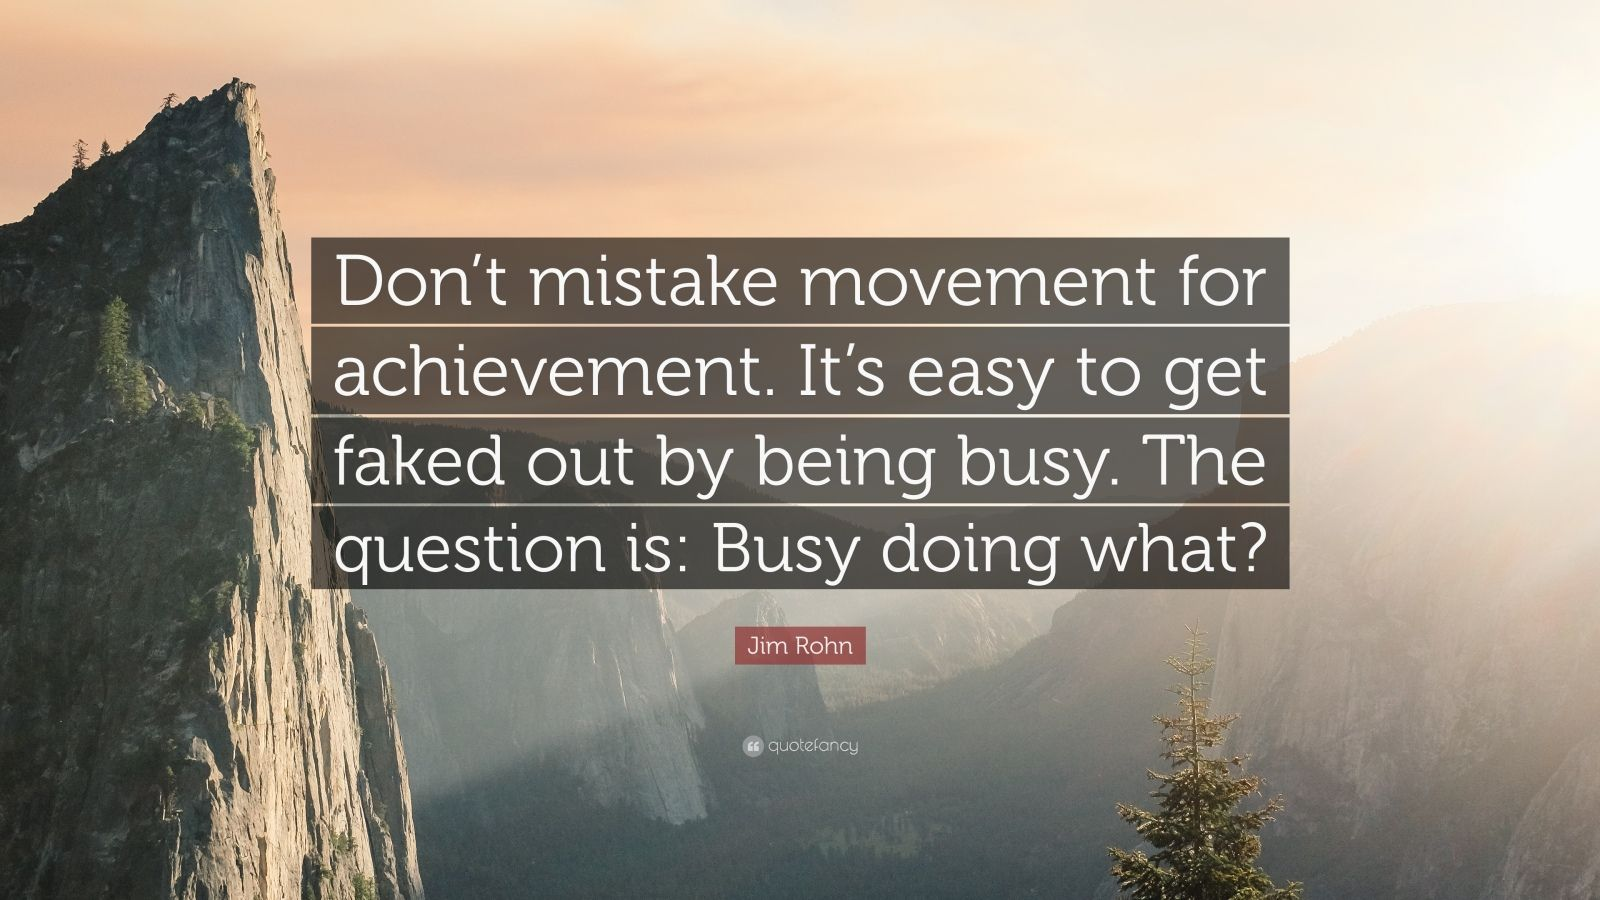 """Jim Rohn Quote: """"Don't mistake movement for achievement. It's easy to get faked out by being busy. The question is: Busy doing what?"""""""